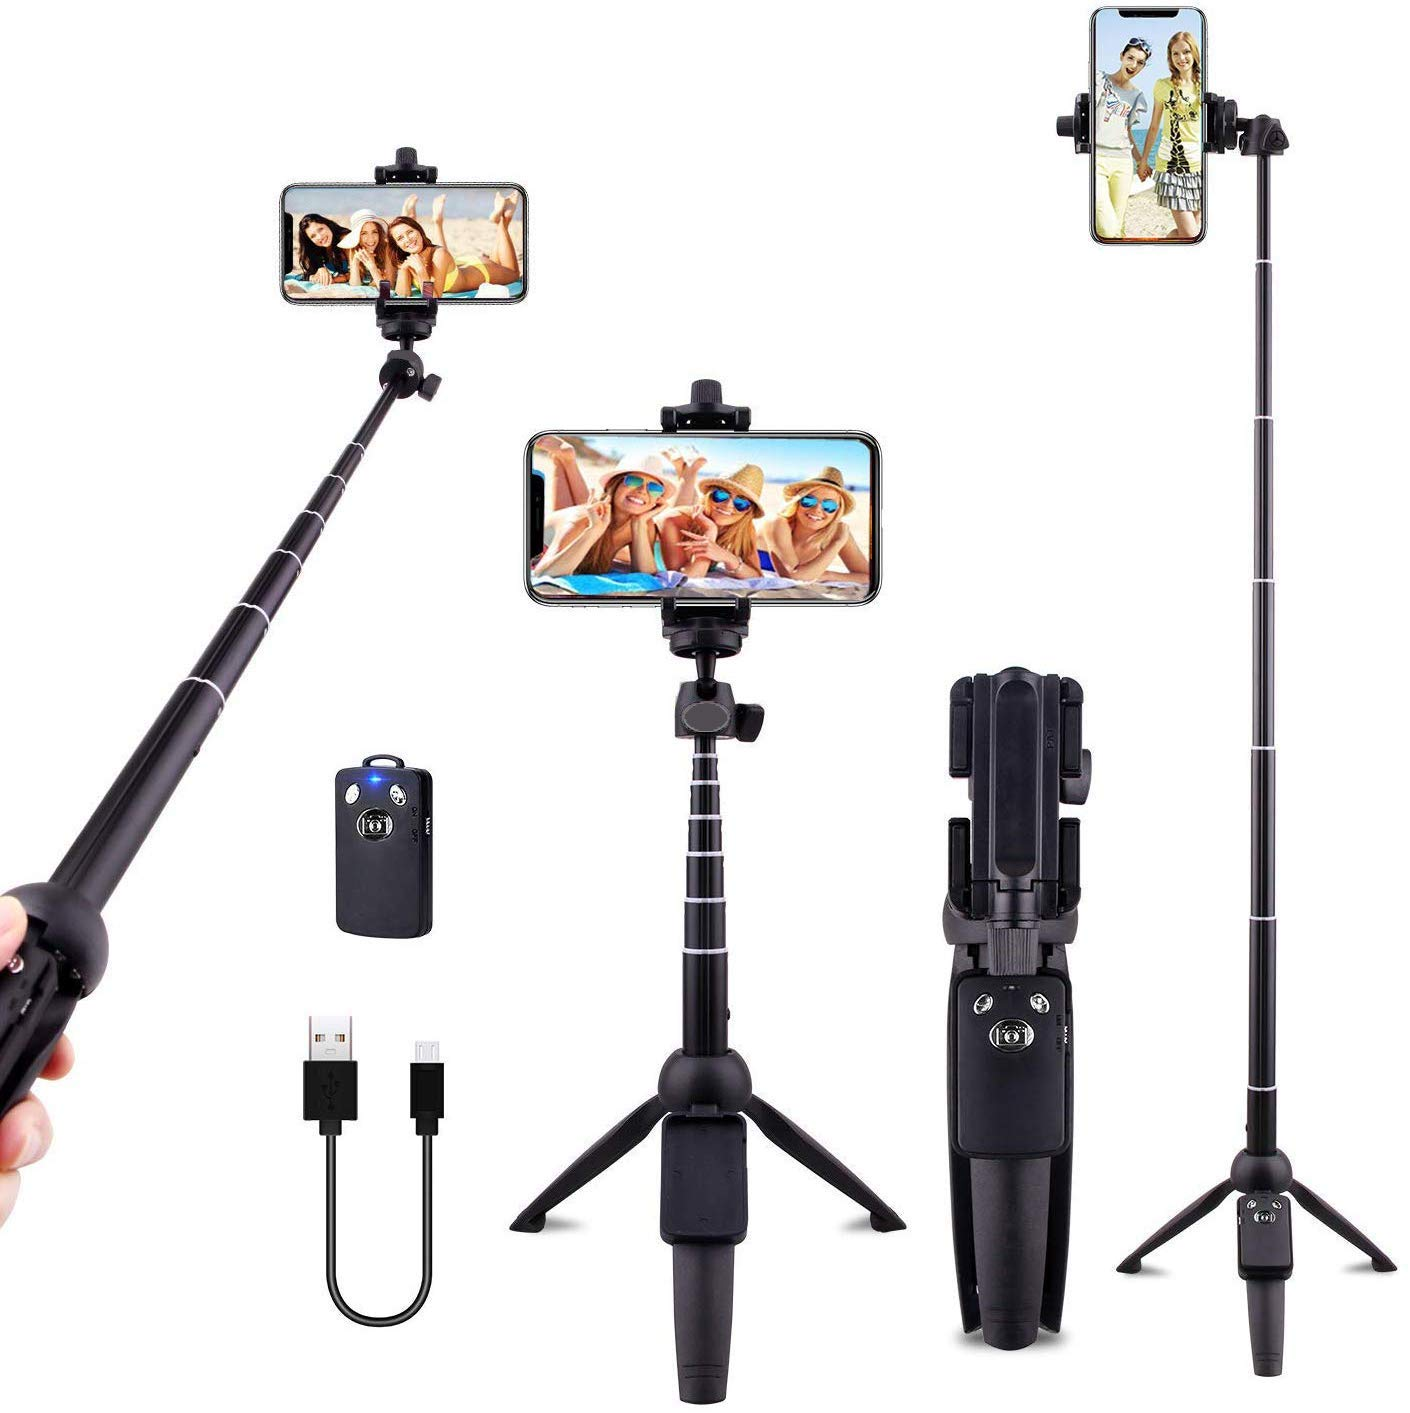 Andoer Selfie Stick Tripod 80CM Bluetooth Extendable 3 in 1 Aluminum Selfie Stick with Detachable Wireless Remote and Tripod Stand Compatible with iPhone Samsung and Android Smartphone